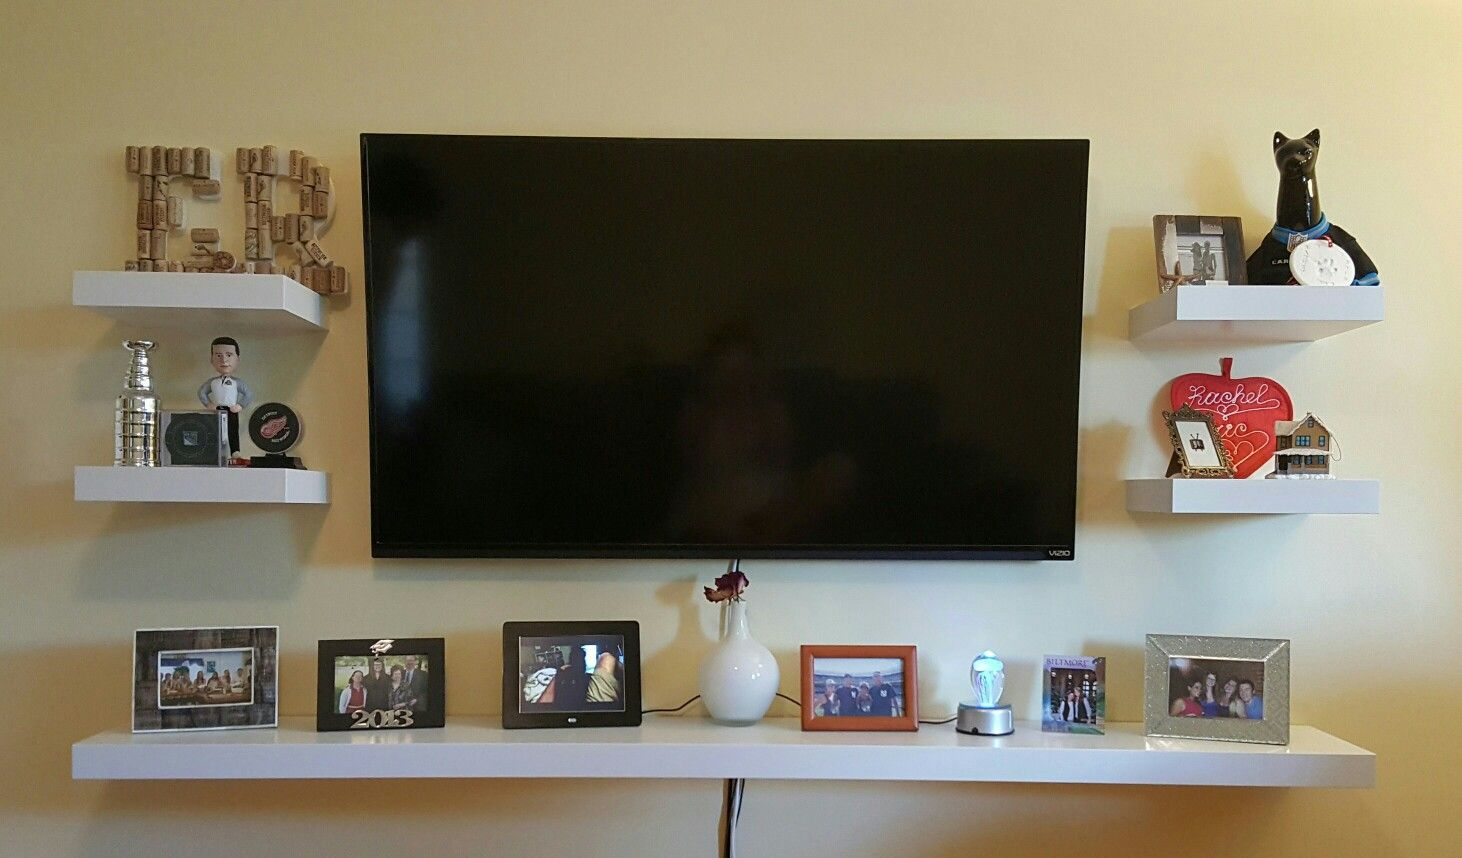 18 Chic And Modern Tv Wall Mount Ideas For Living Room Wall Mounted Tv Decor Mounted Tv Decor Living Room Tv Wall